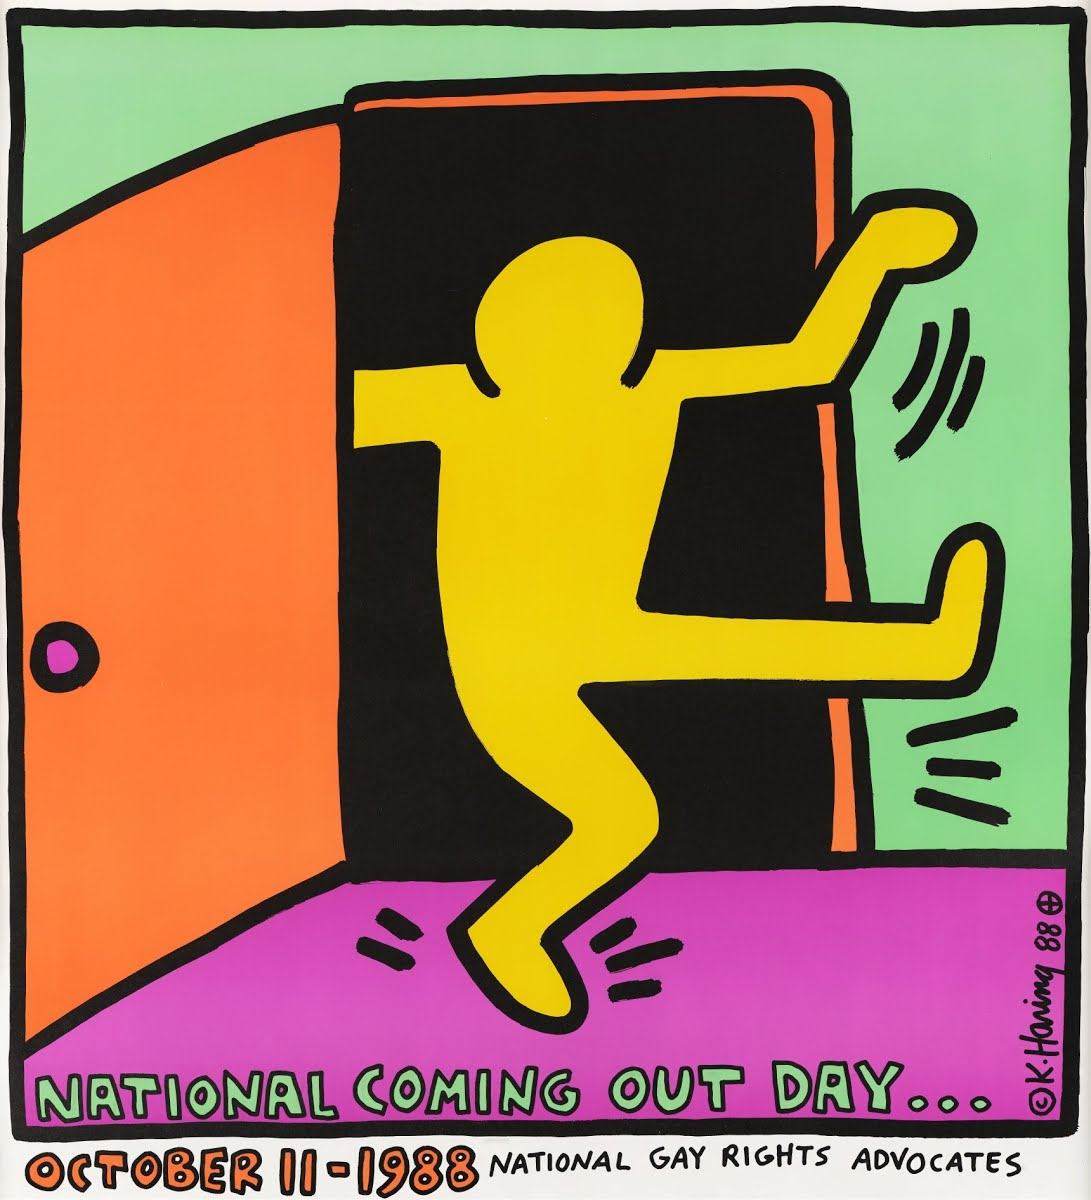 National Coming Out Day USA - Keith Haring — Google Arts & Culture